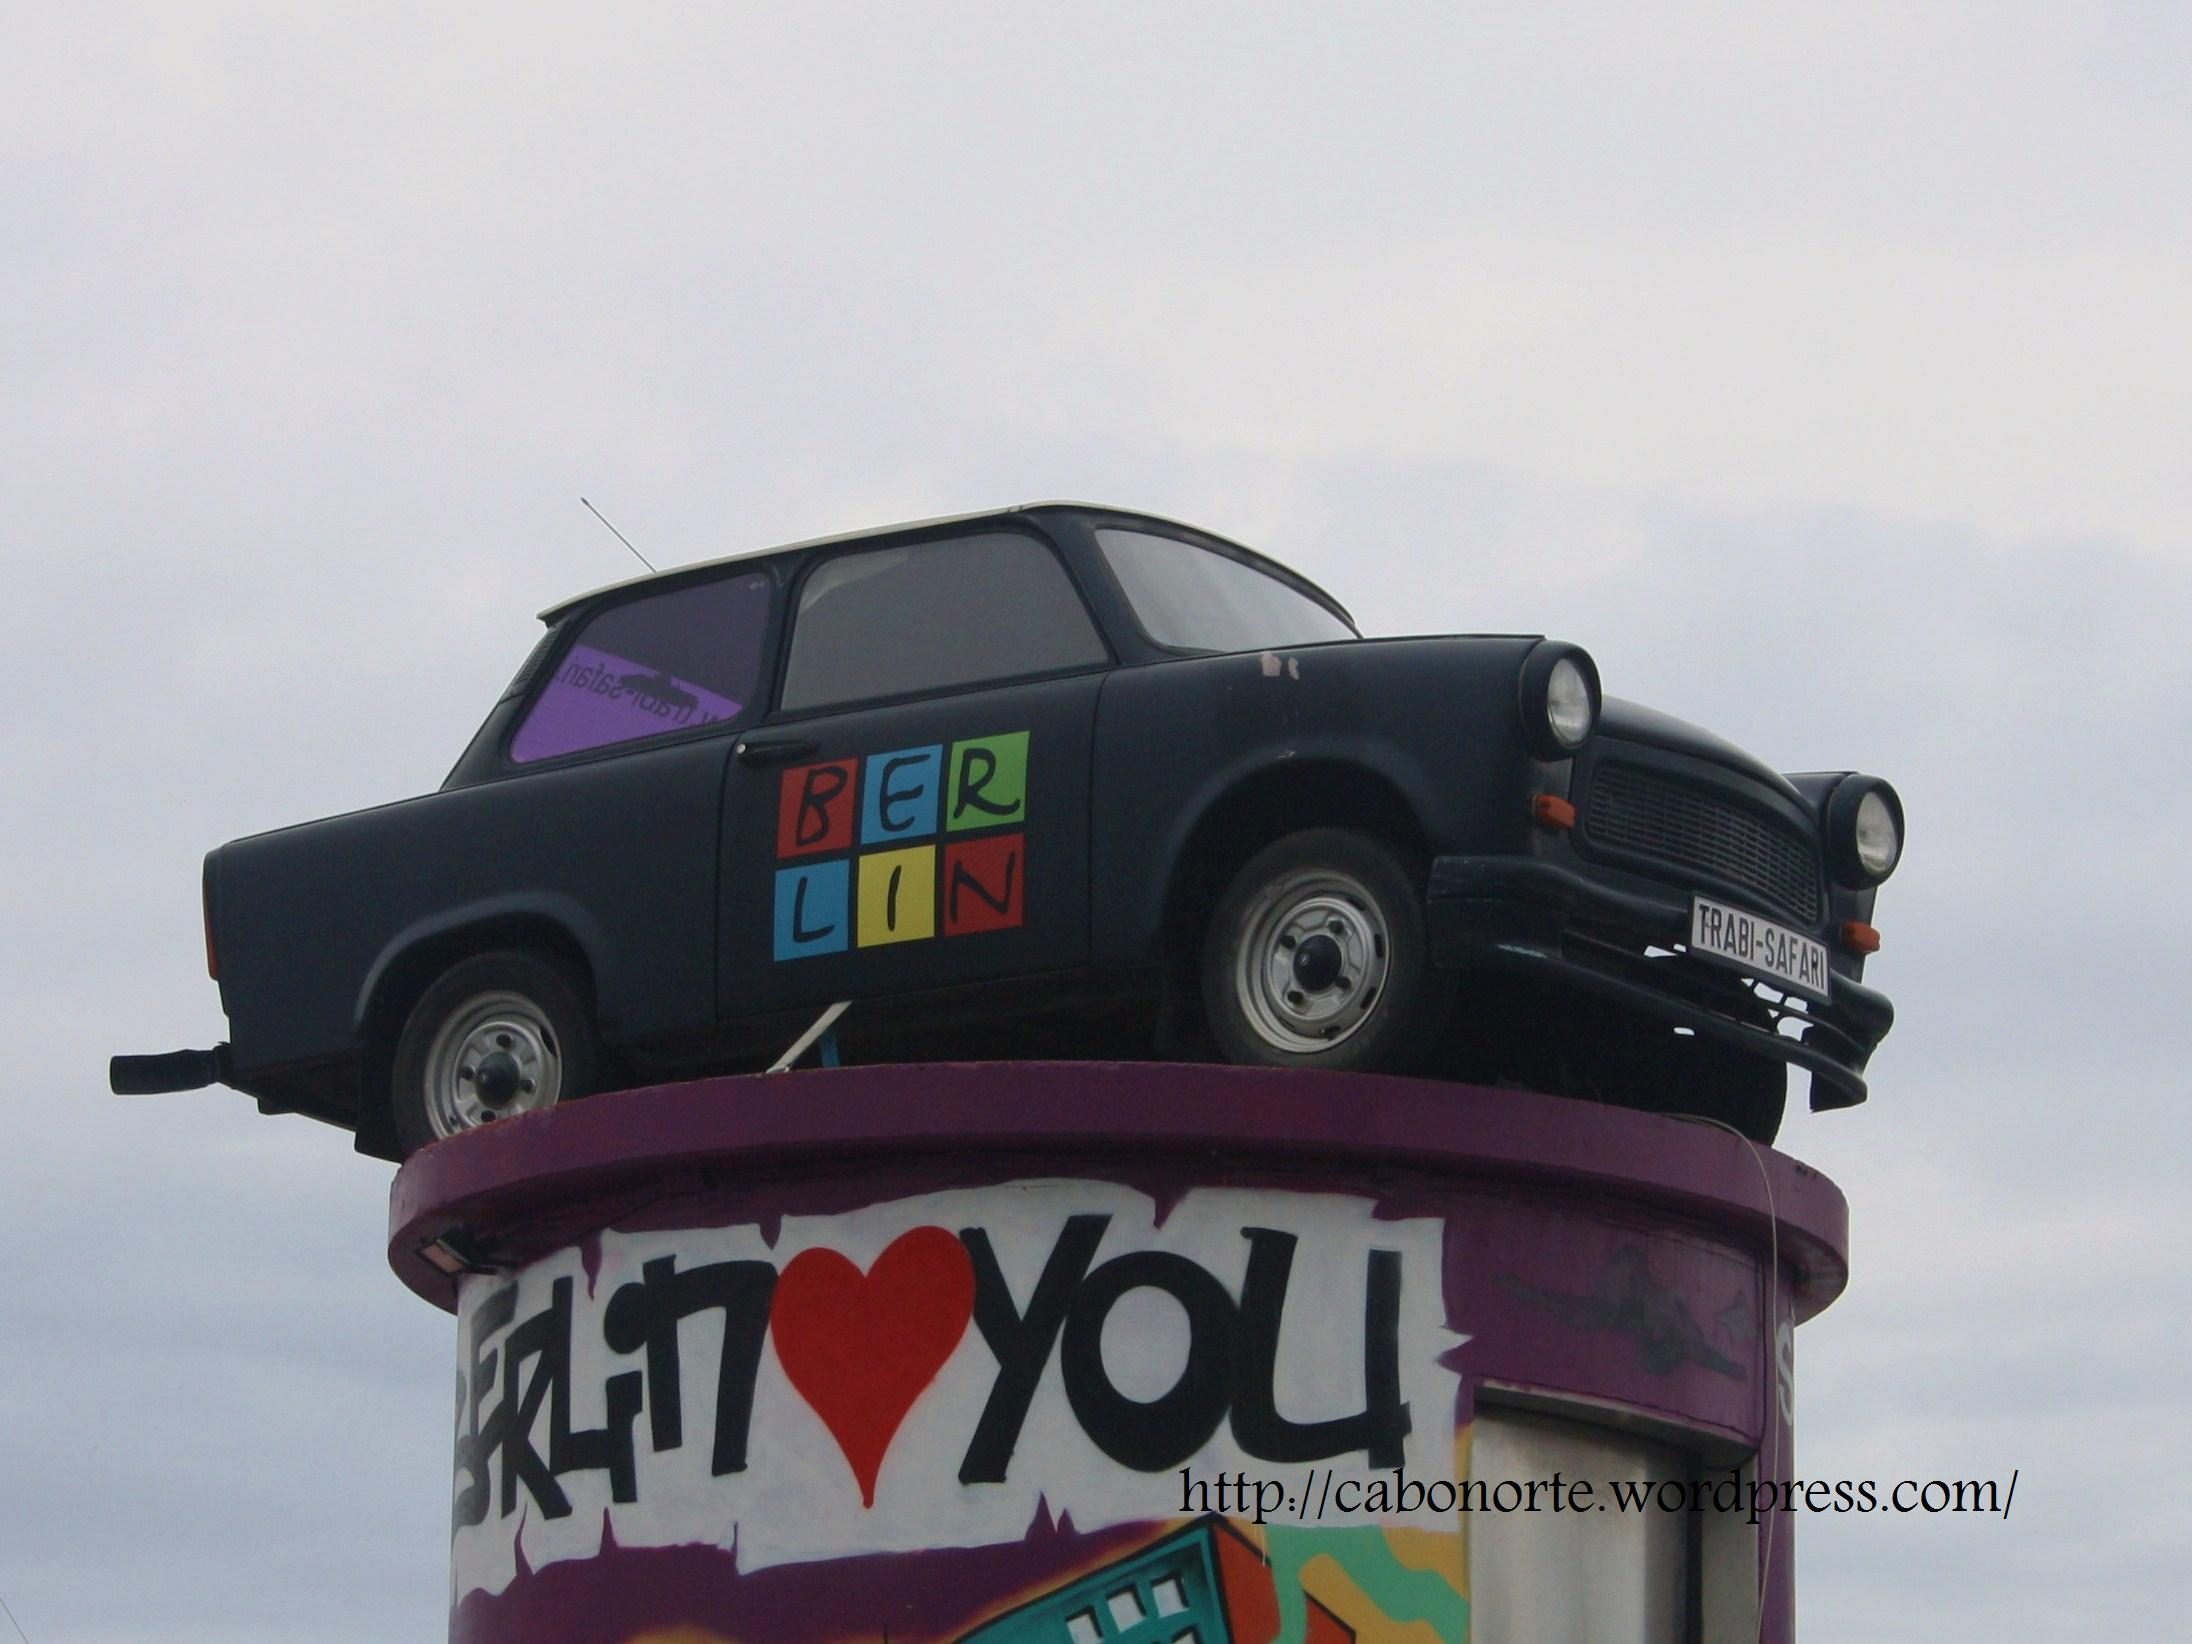 A Trabant in Berlin